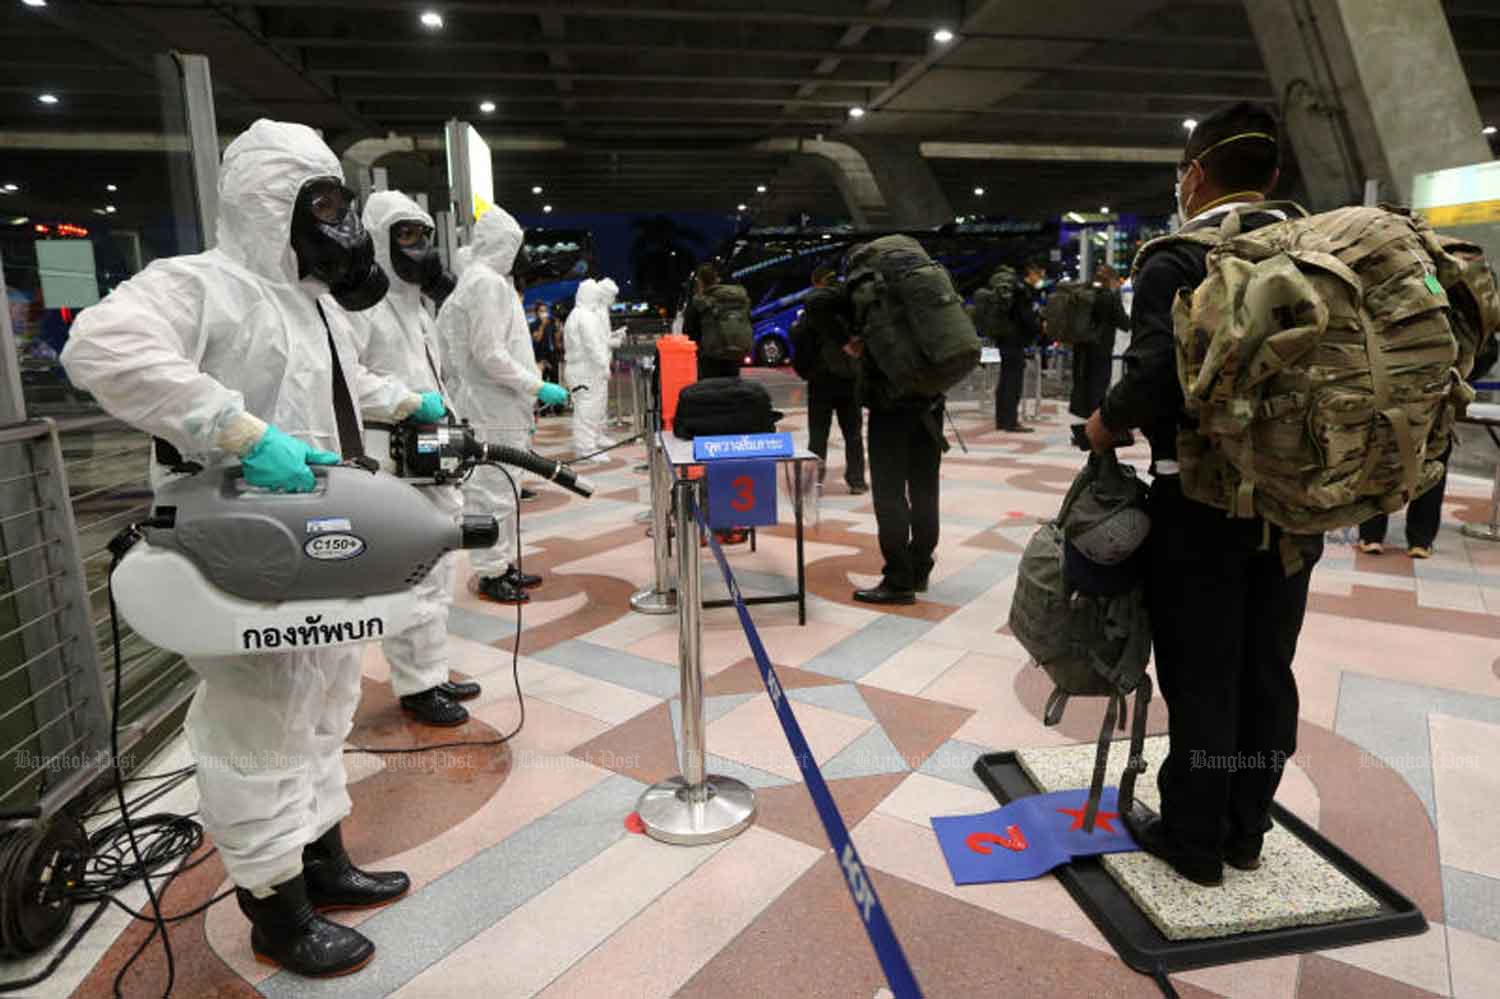 Disease control personnel disinfect soldiers who returned from an exercise in Hawaii, at Suvarnabhumi airport in Samut Prakan province on July 22. (Photo: Wichan Charoenkiatpakul)